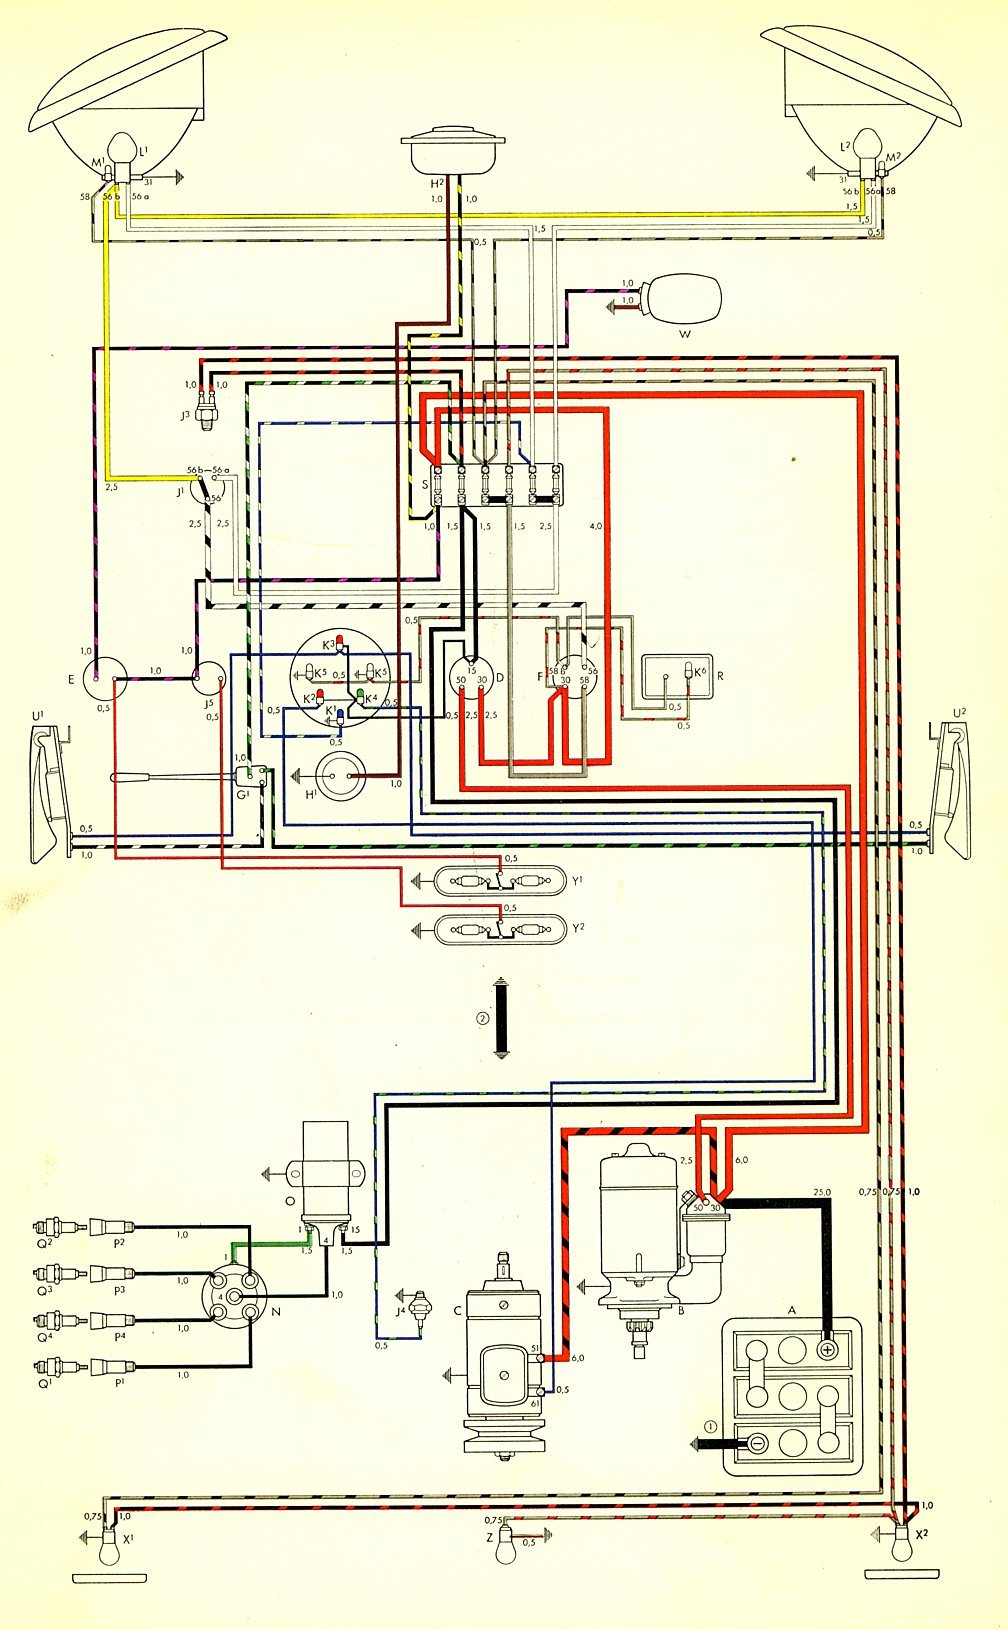 Vw Bus Fuse Box Diagram Detailed Schematic Diagrams 2008 Mazda 5 Chilton Thesamba Com Type 2 Wiring 1969